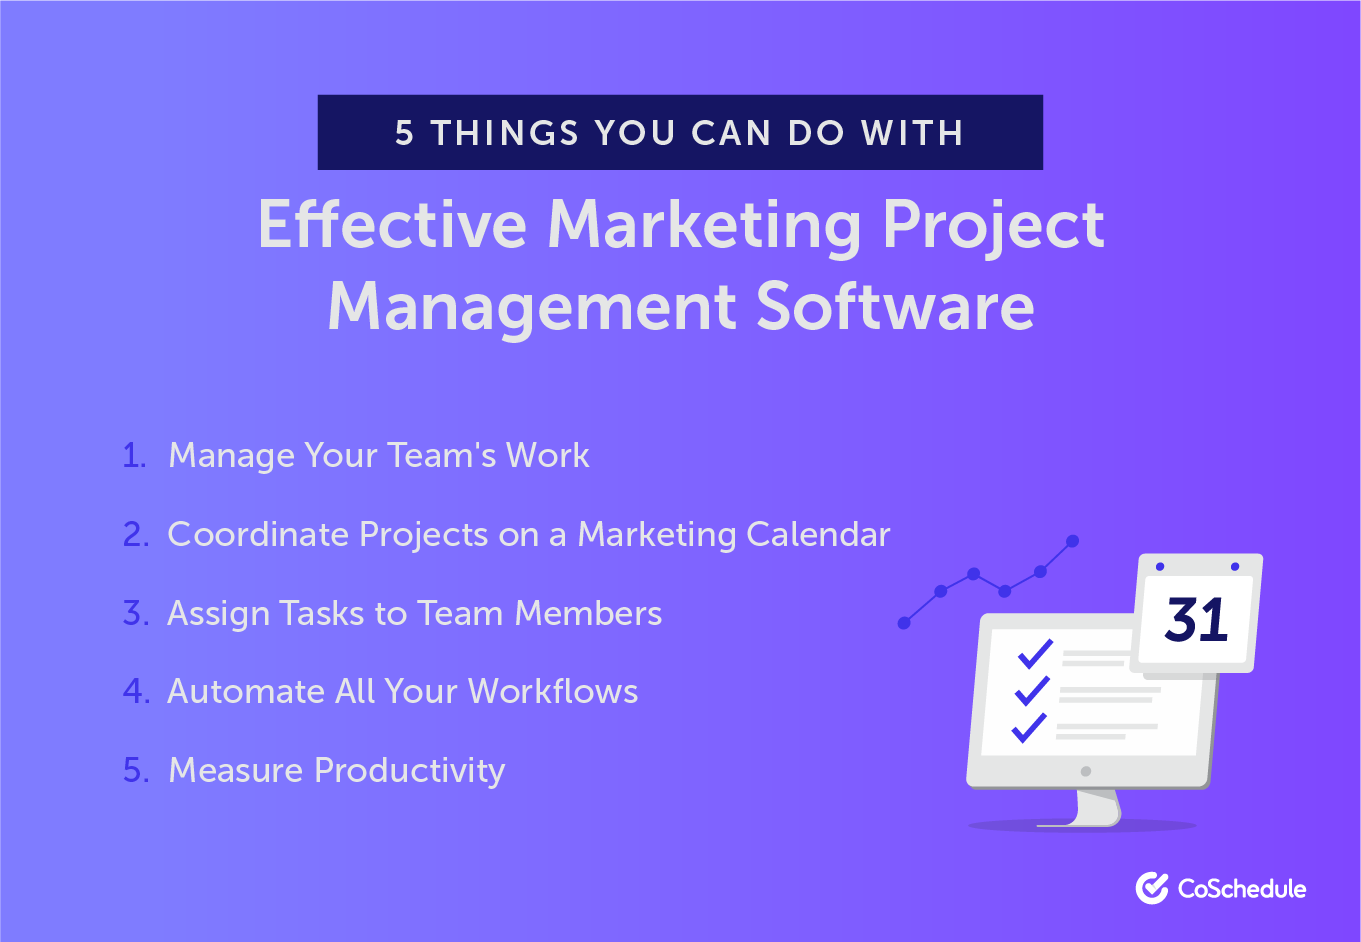 5 Things You Can Do With Effective Marketing Project Management Software